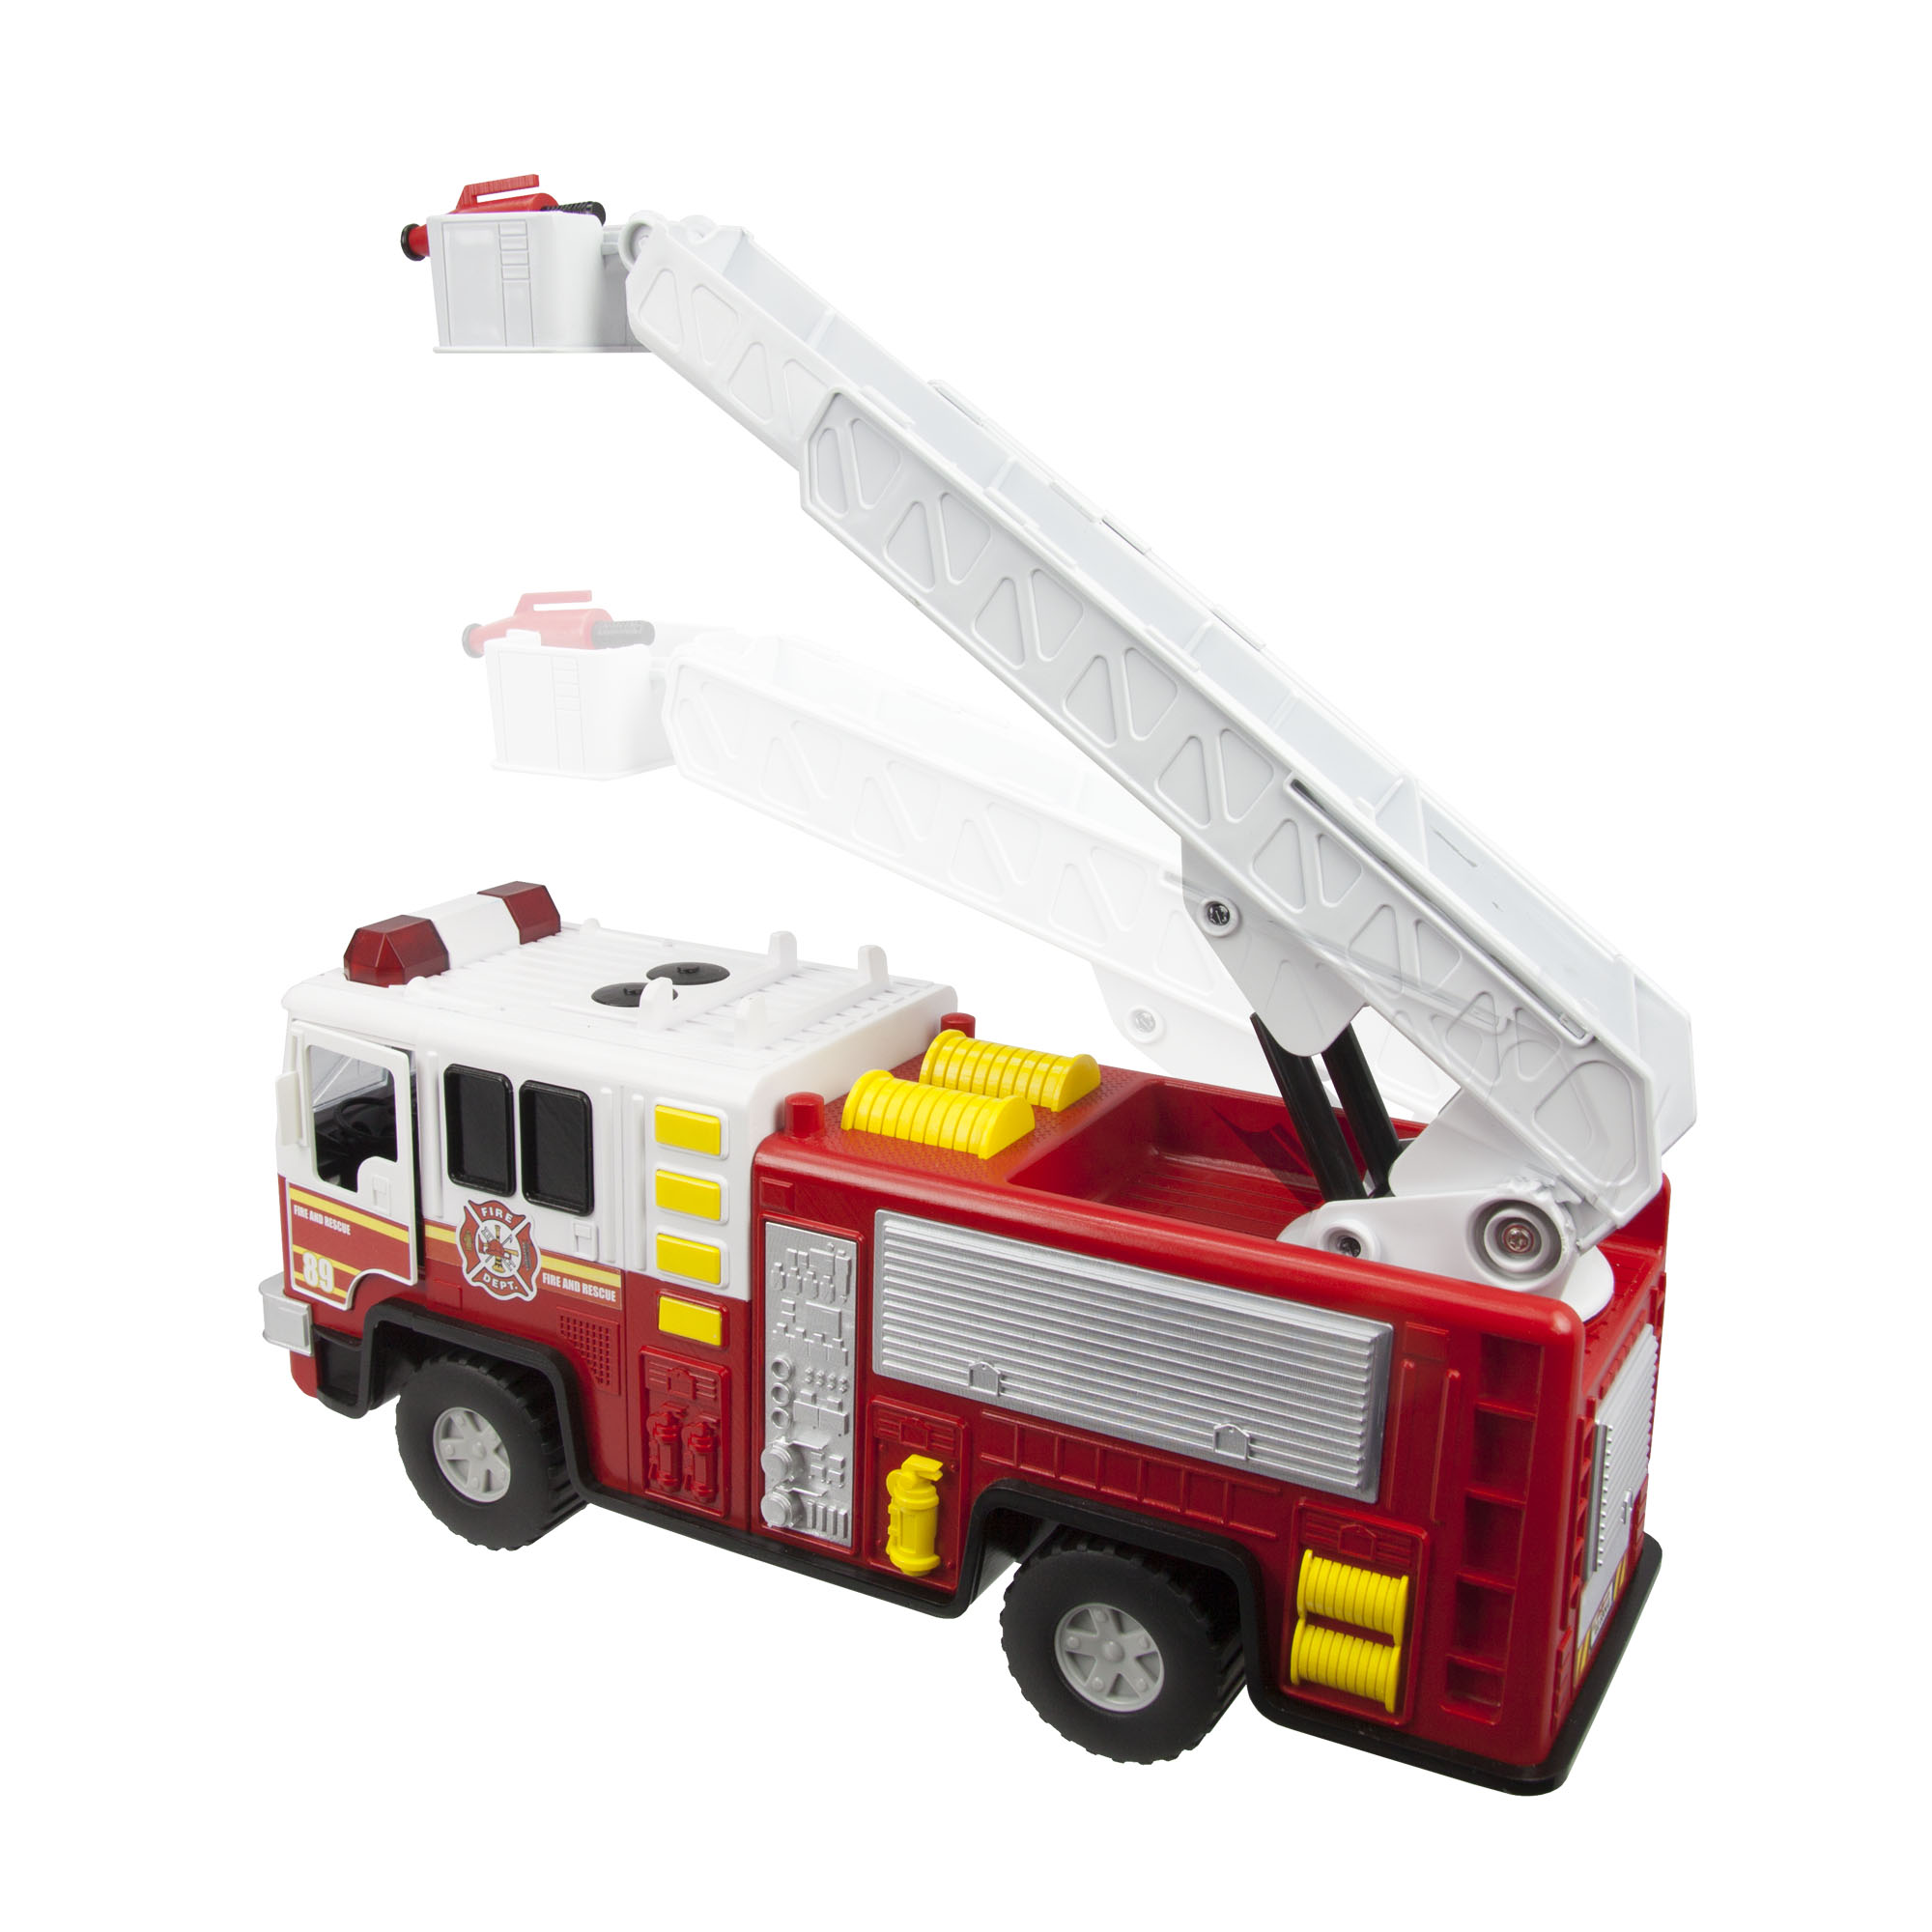 Adventure Force Fire Truck by Generic